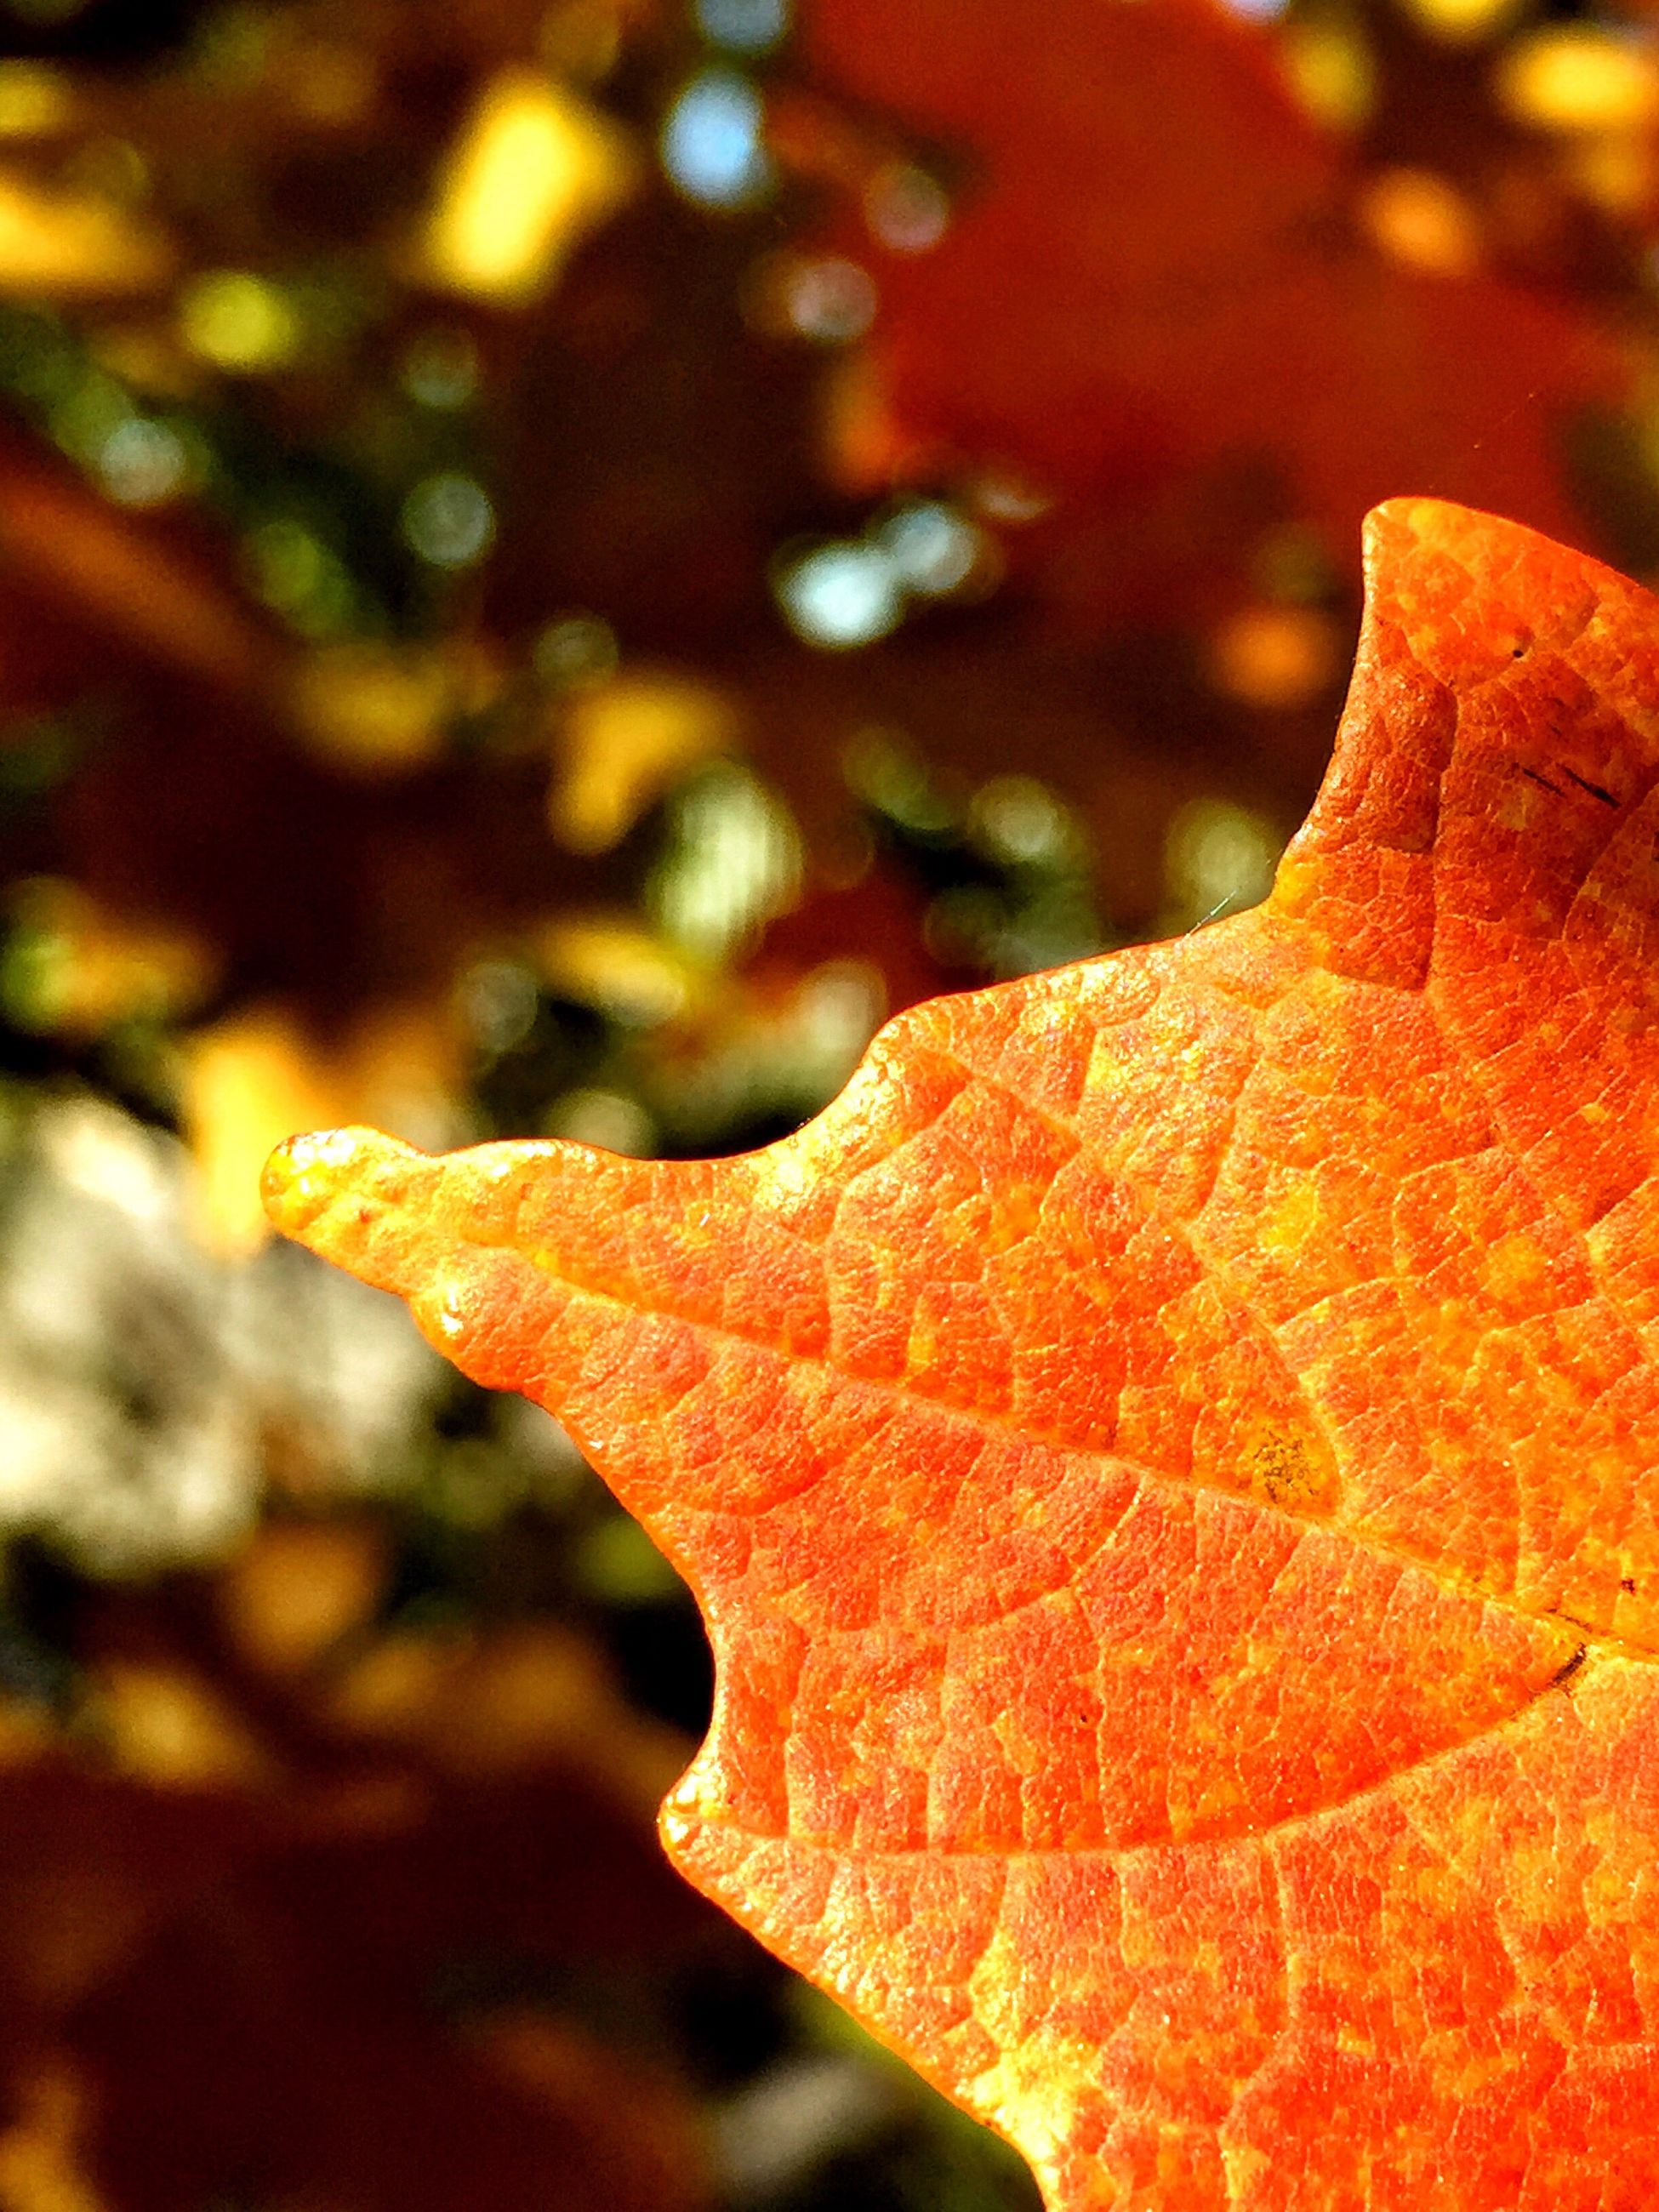 leaf, close-up, autumn, season, change, selective focus, detail, extreme close up, nature, focus on foreground, natural condition, leaf vein, beauty in nature, orange color, growth, red, fragility, day, outdoors, leaves, freshness, botany, vibrant color, red color